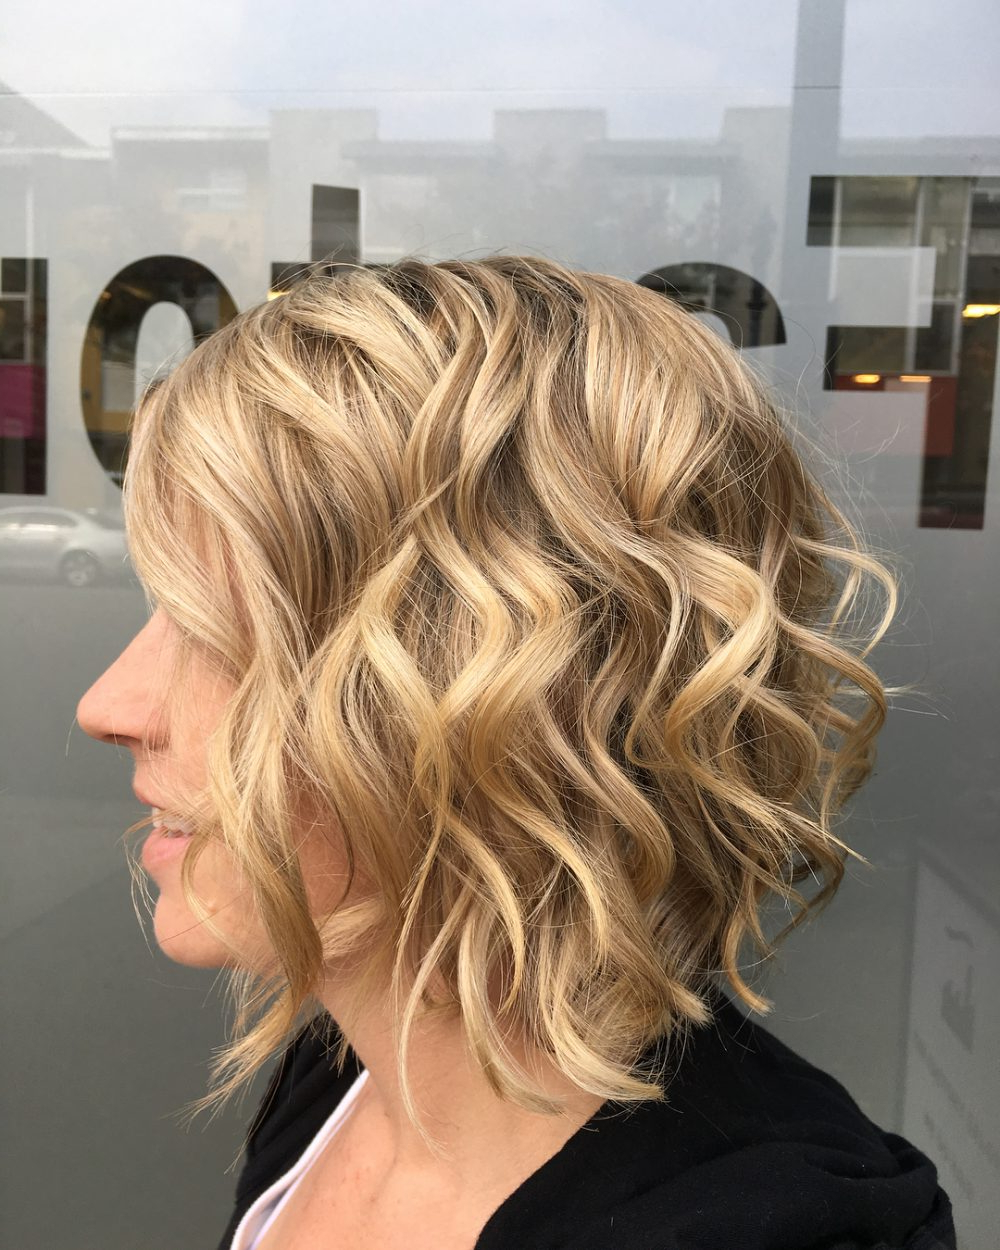 43 Greatest Wavy Bob Hairstyles – Short, Medium And Long In 2018 Regarding Loosely Waved Messy Brunette Bob Hairstyles (View 23 of 25)